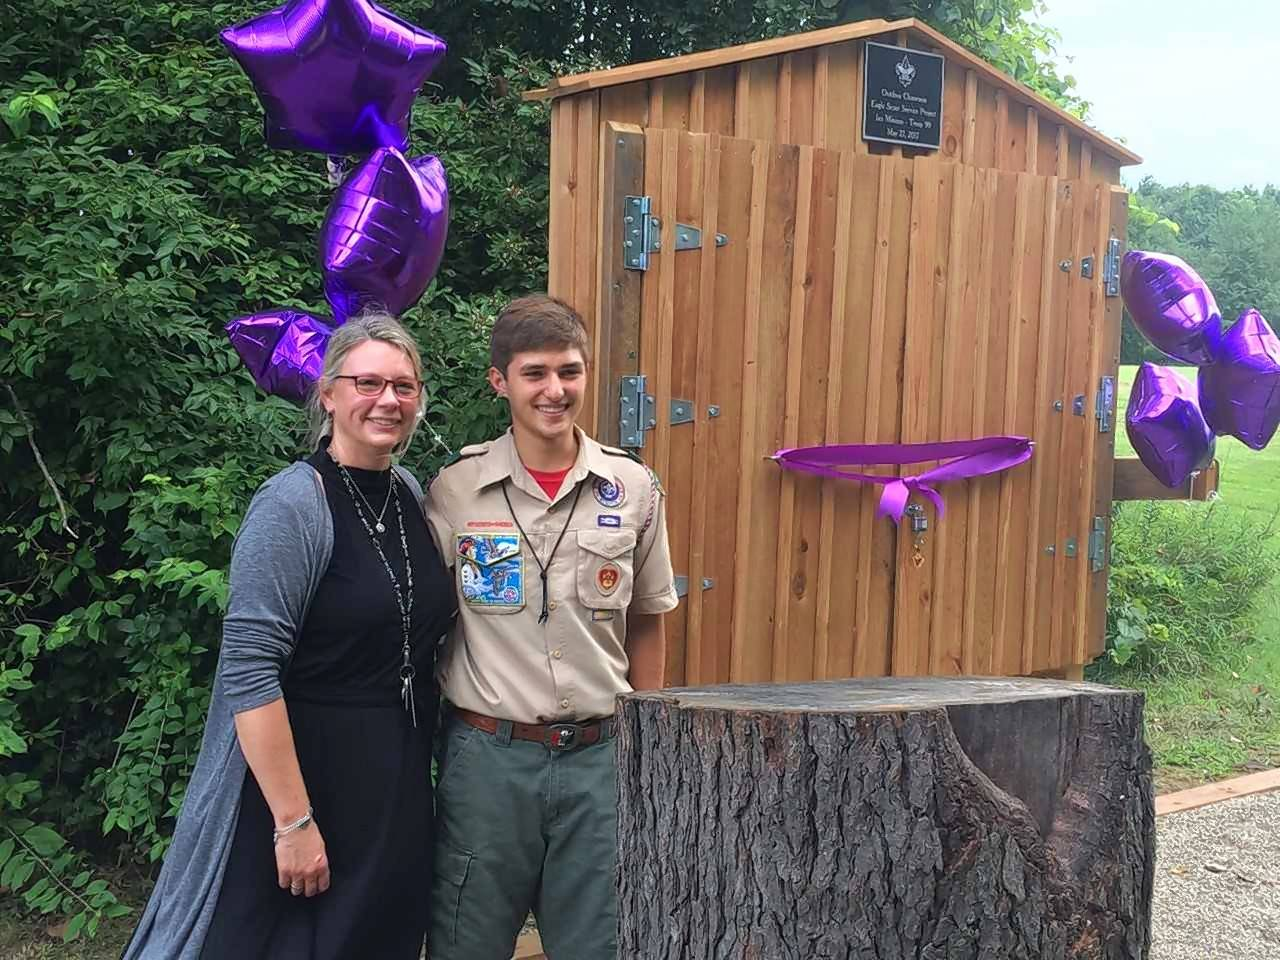 Cotton Creek School Principal Diane Kelly joined Ian Mininni at the dedication for the outdoor classroom he created as an Eagle Scout project.